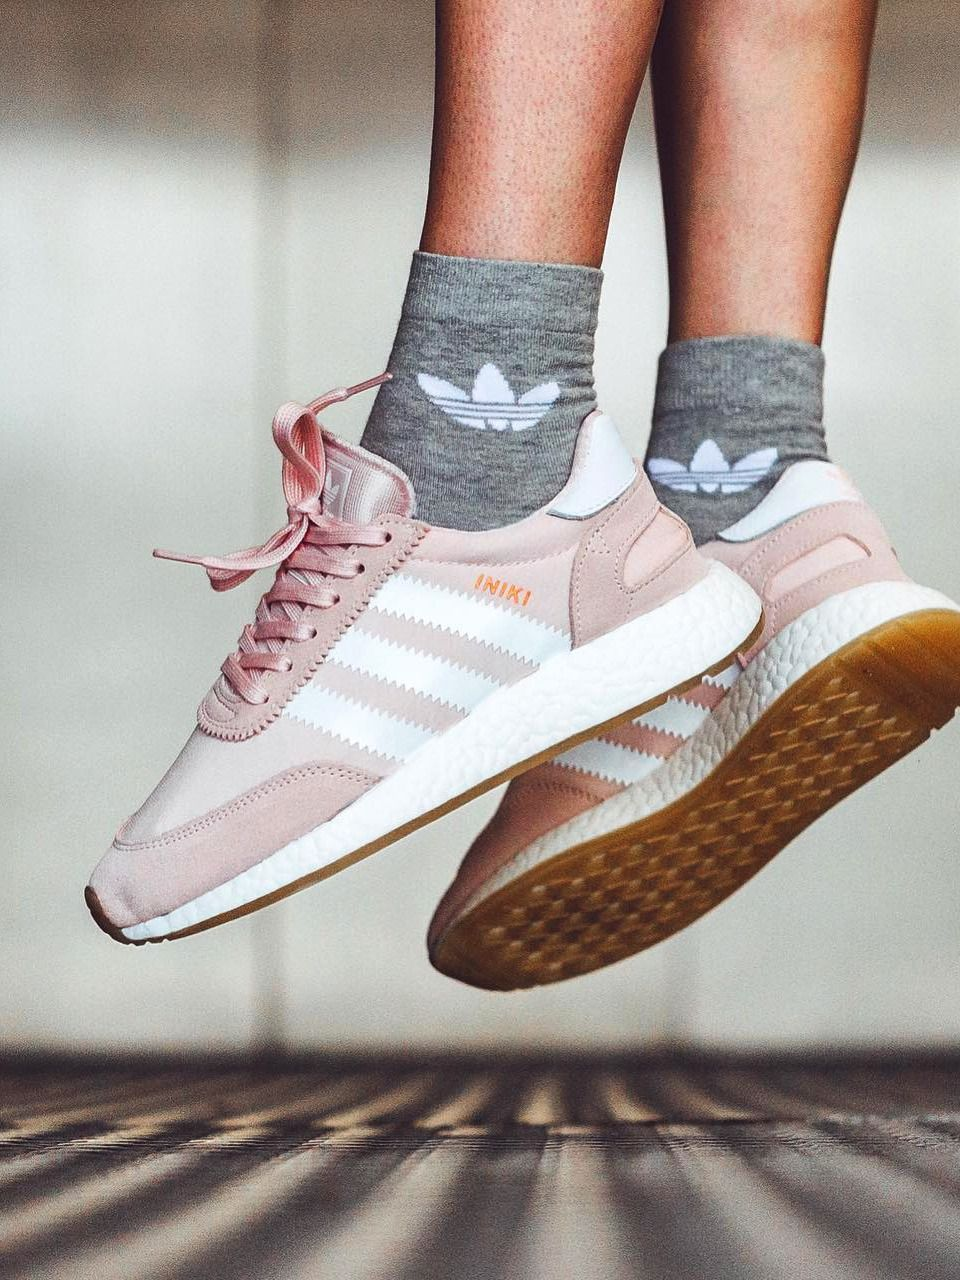 eae29650ce6cfc Adidas Iniki Runner Boost - Pink White - 2017 (by titoloshop) Where to buy